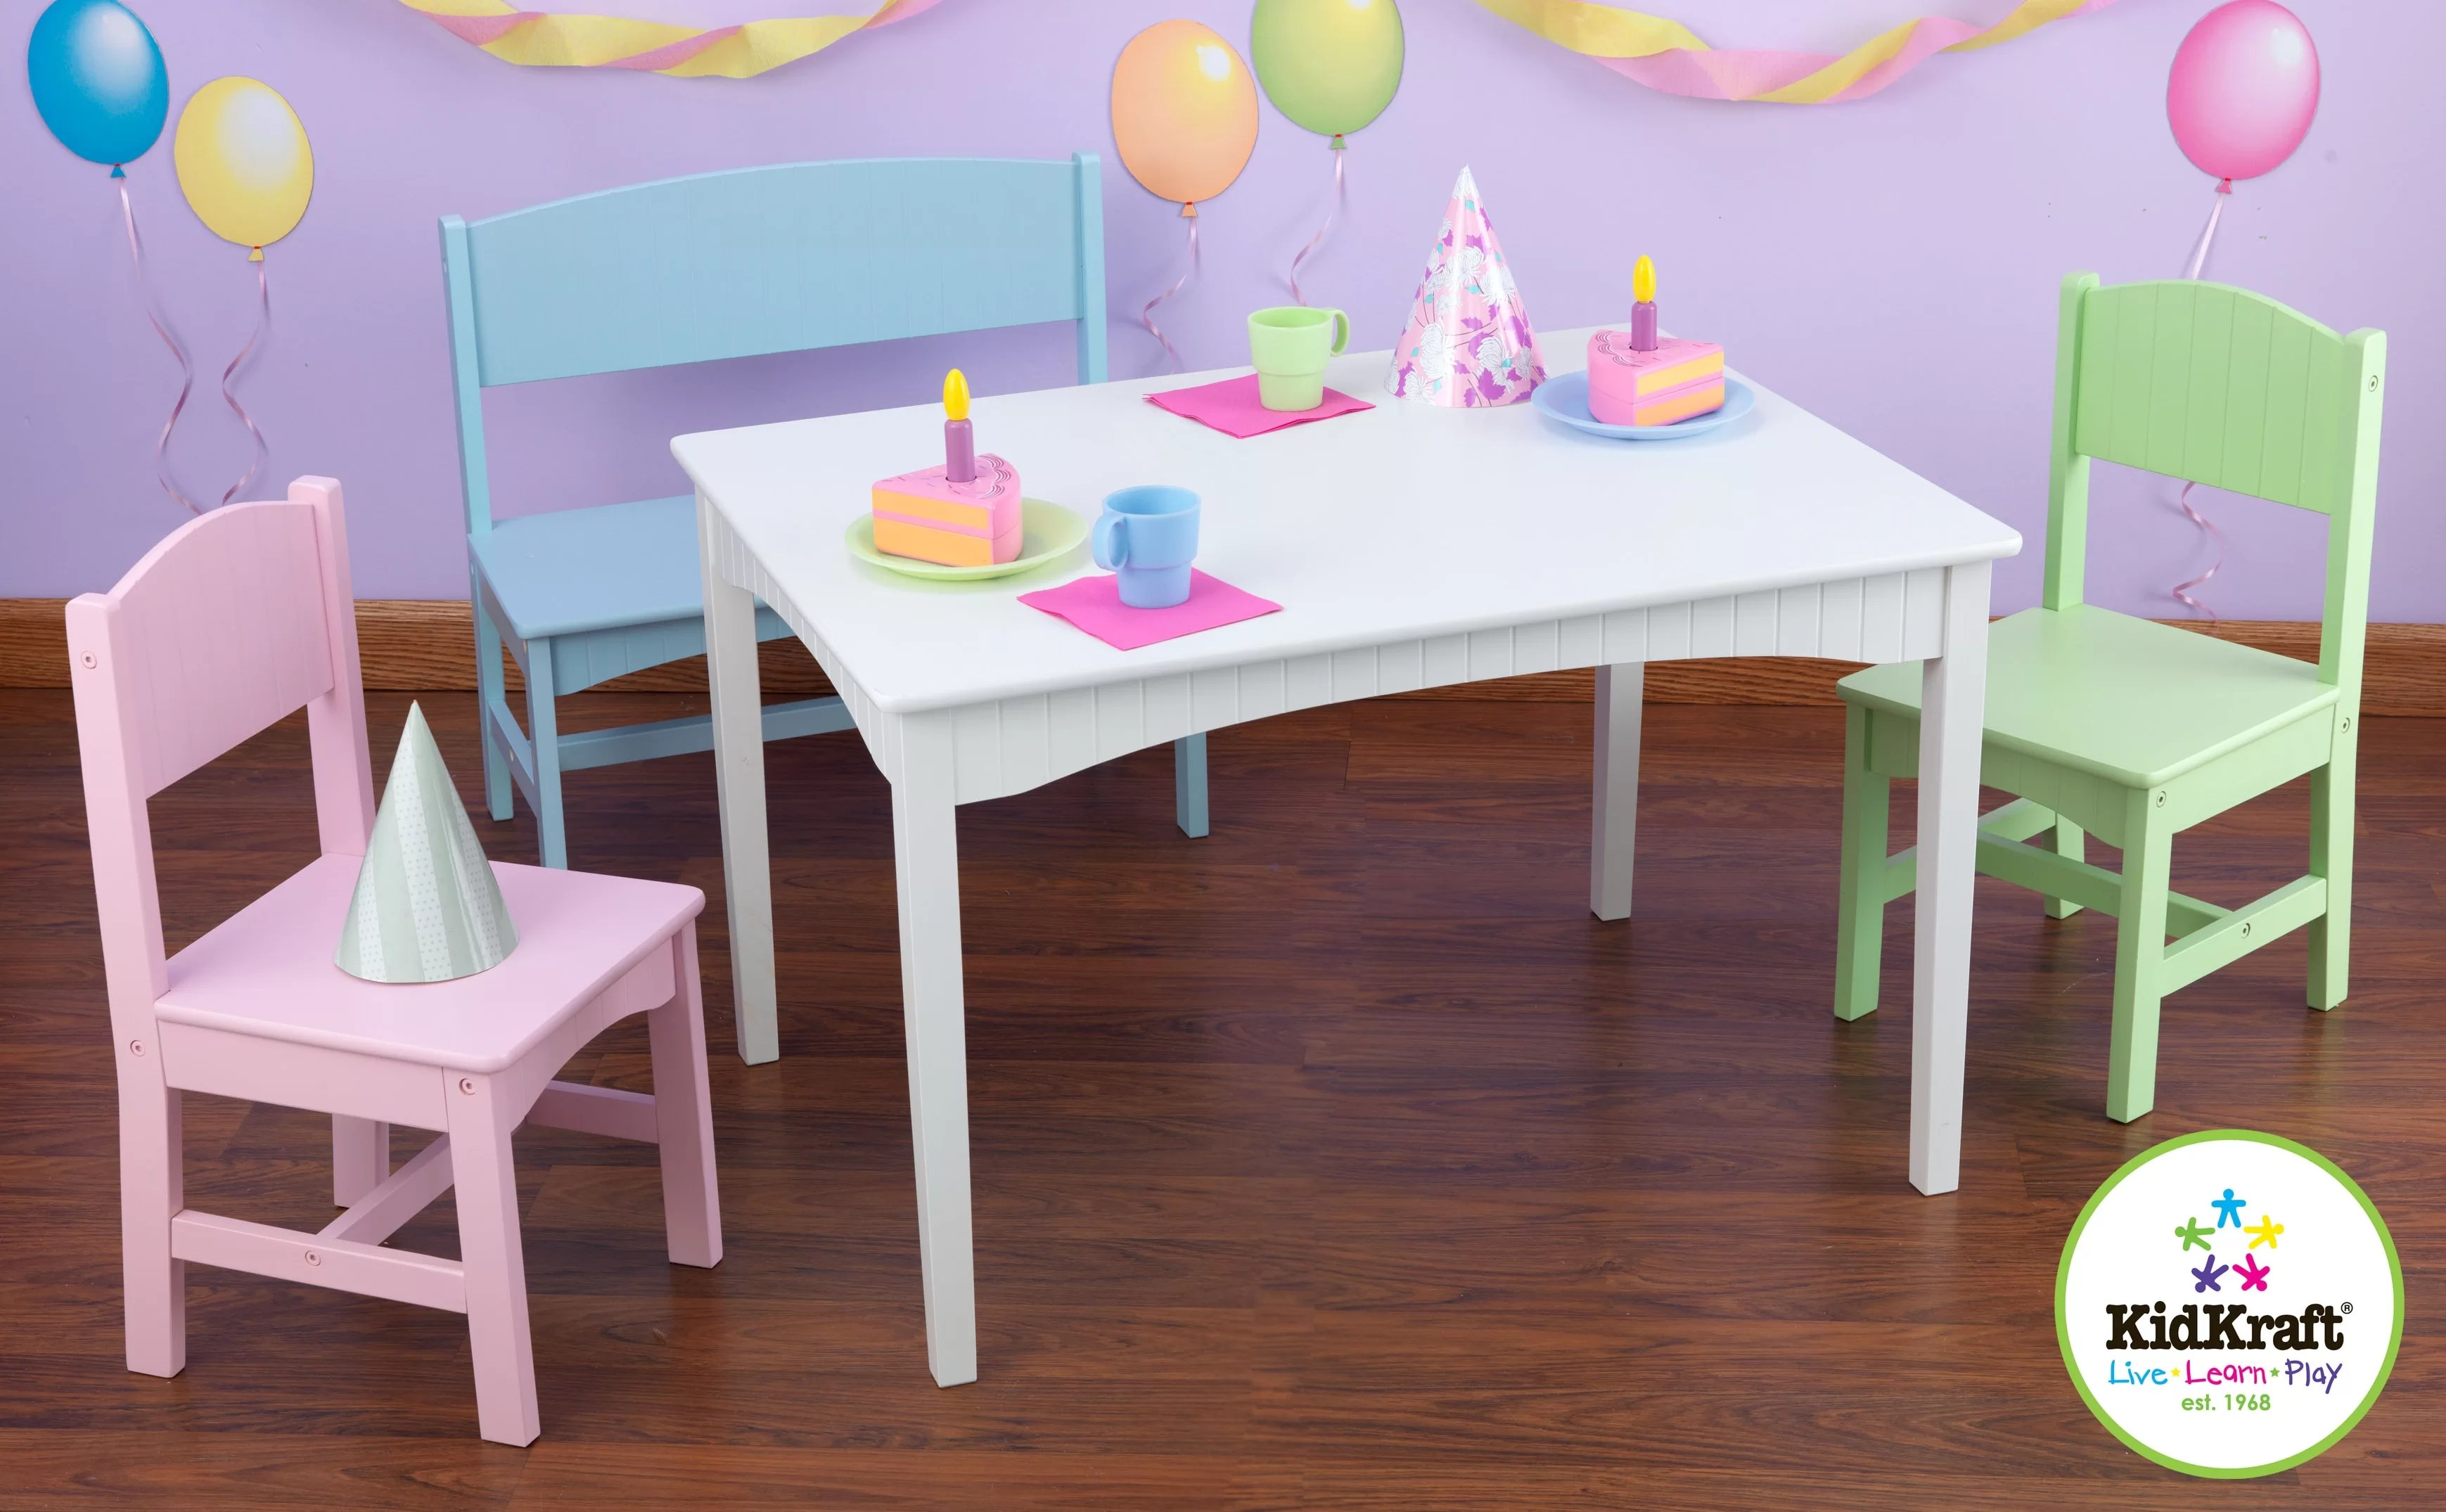 Kidkraft Heart Table And Chair Set Kidkraft Chairs And Table Buy Kidkraft Nantucket Table Chair Set